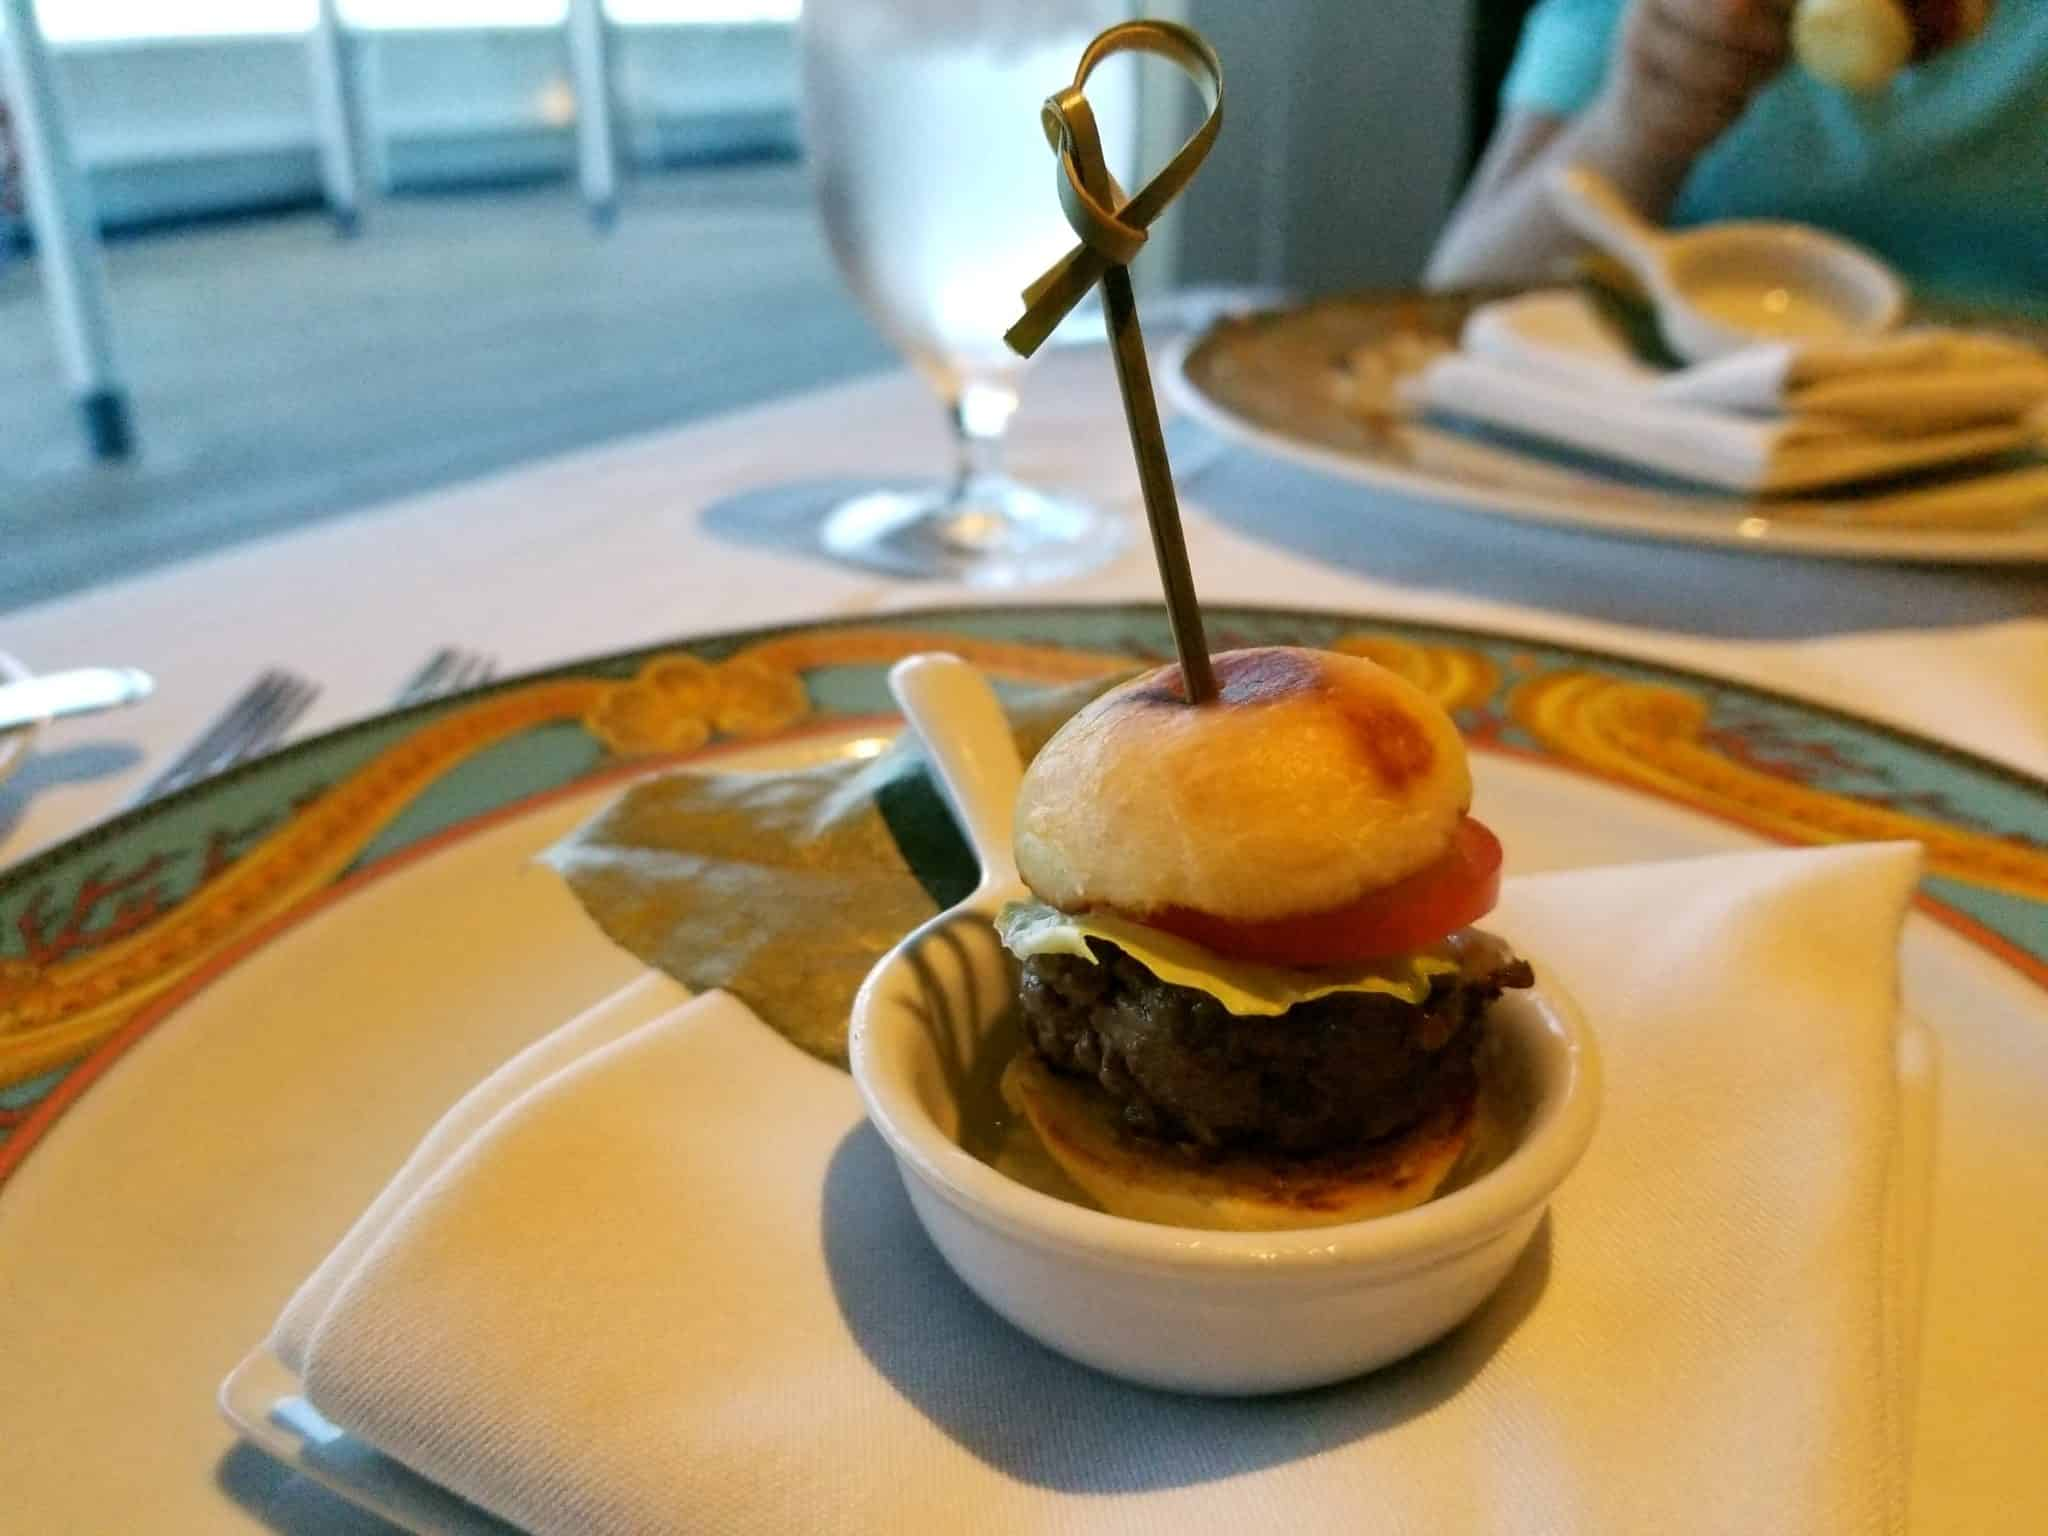 A treat from the Chef, Wagyu Beef Burger